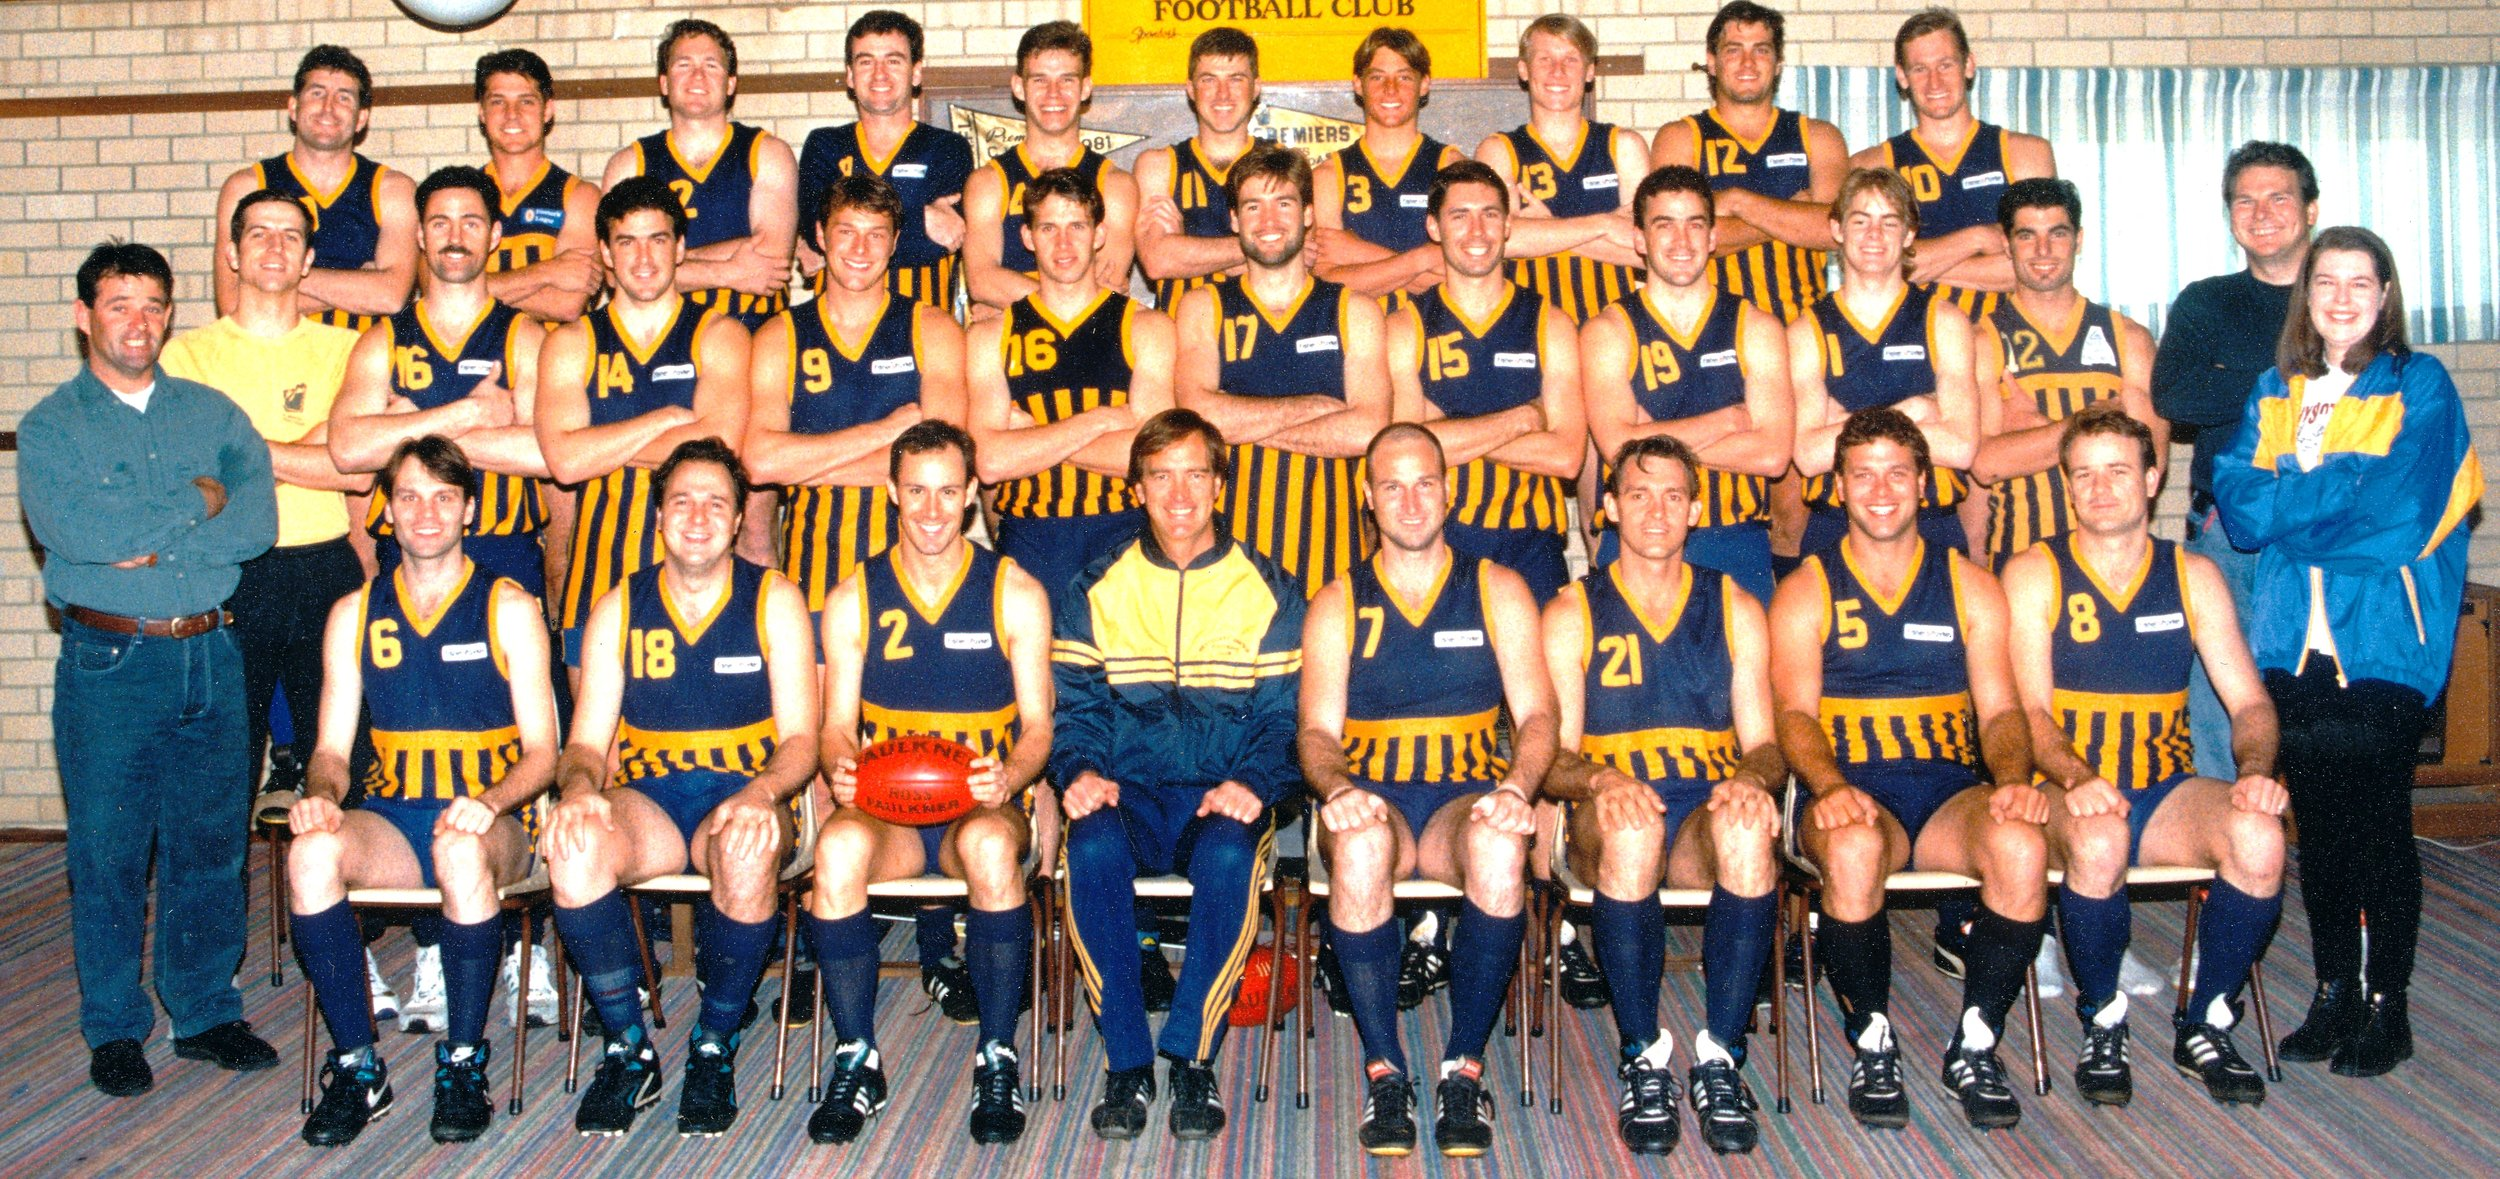 1994 - A Grade premiership side, coached by John Dimmer